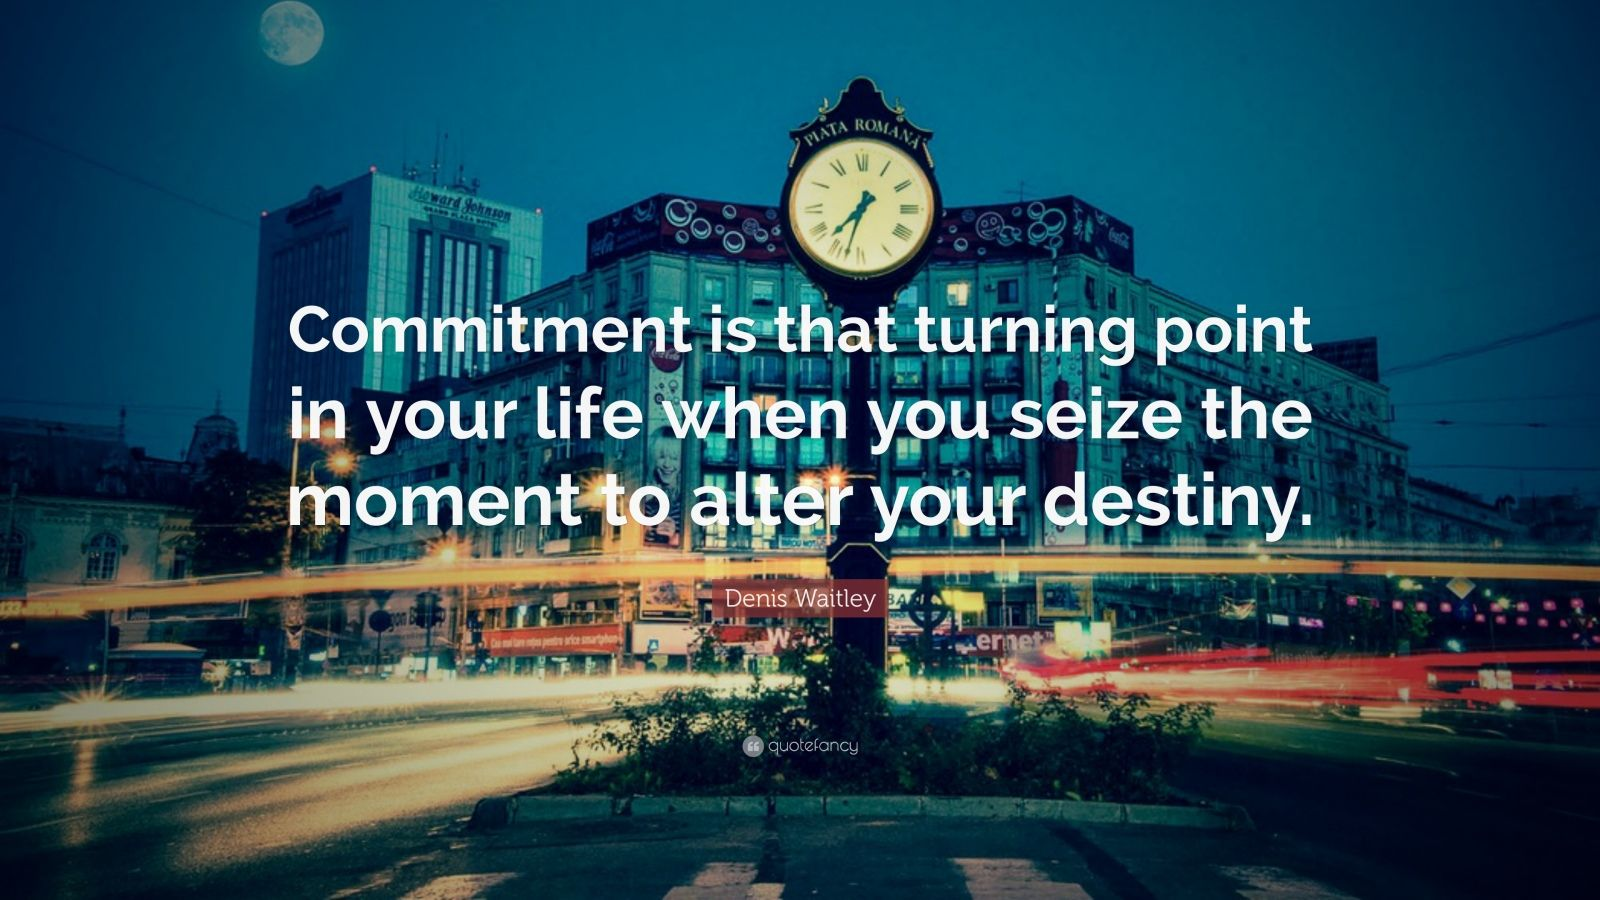 """Denis Waitley Quote: """"Commitment is that turning point in your life when you seize the moment to alter your destiny."""""""